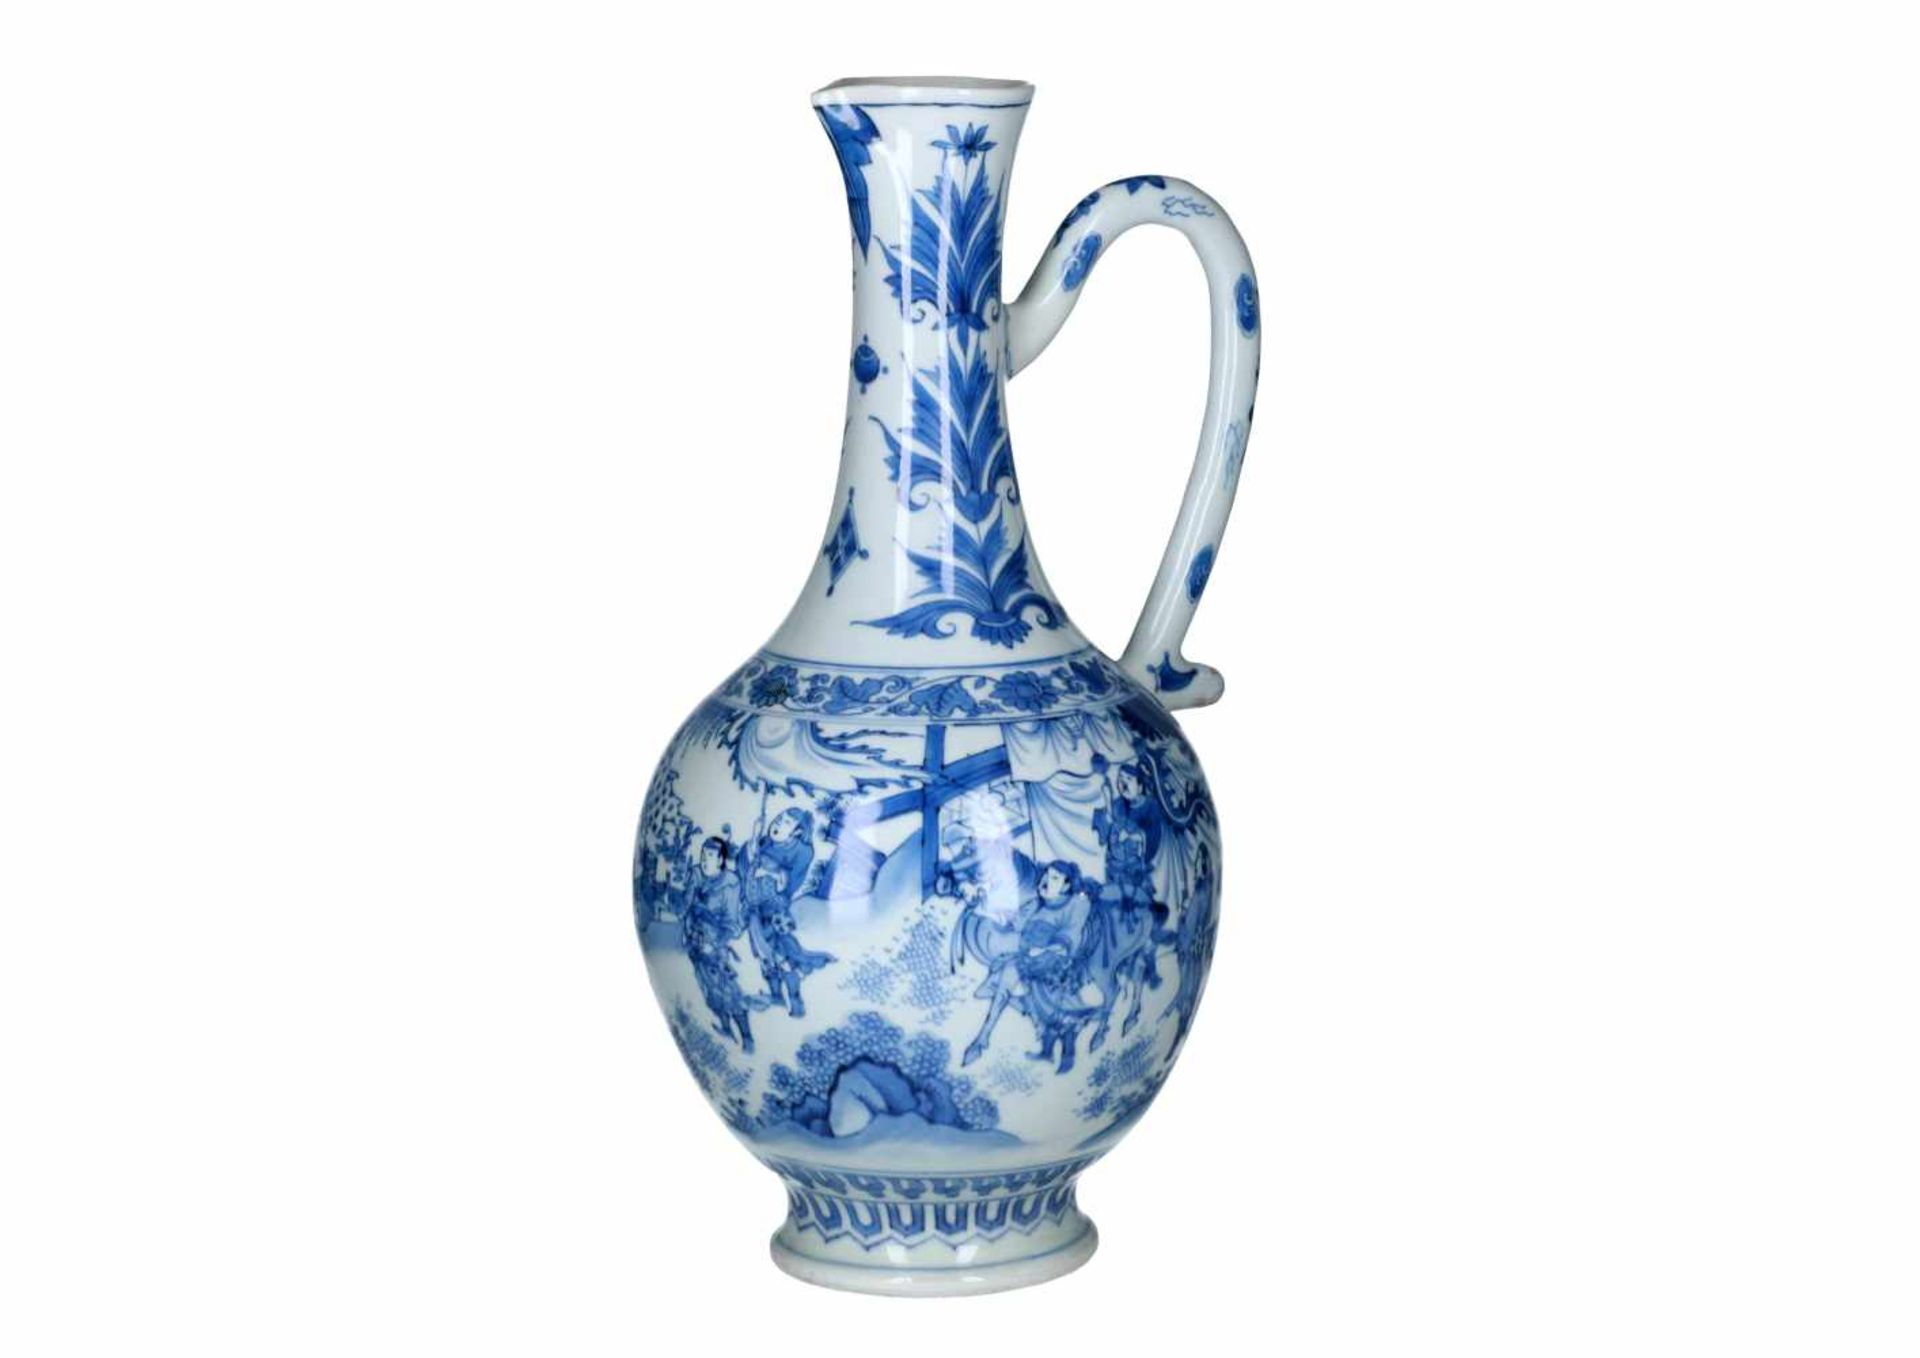 A blue and white porcelain jug, decorated with figures, a river landscape and flowers. Unmarked.